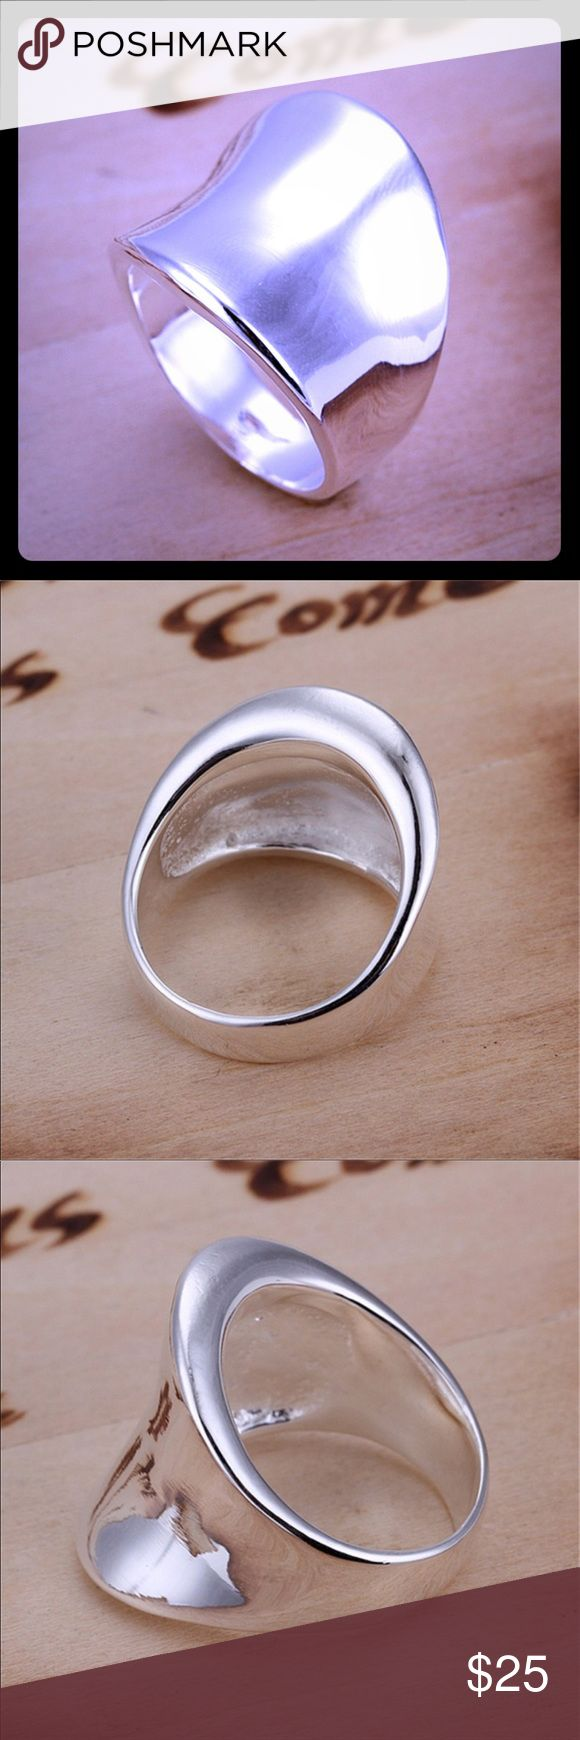 NIB Stylish and Trendy .925 SS Thumb Ring! NIB Stylish and Trendy .925 Sterling Silver Thumb Ring!  Very cool and I wear on my ring finger 😜  Material - .925 Sterling Silver Jewelry Rings